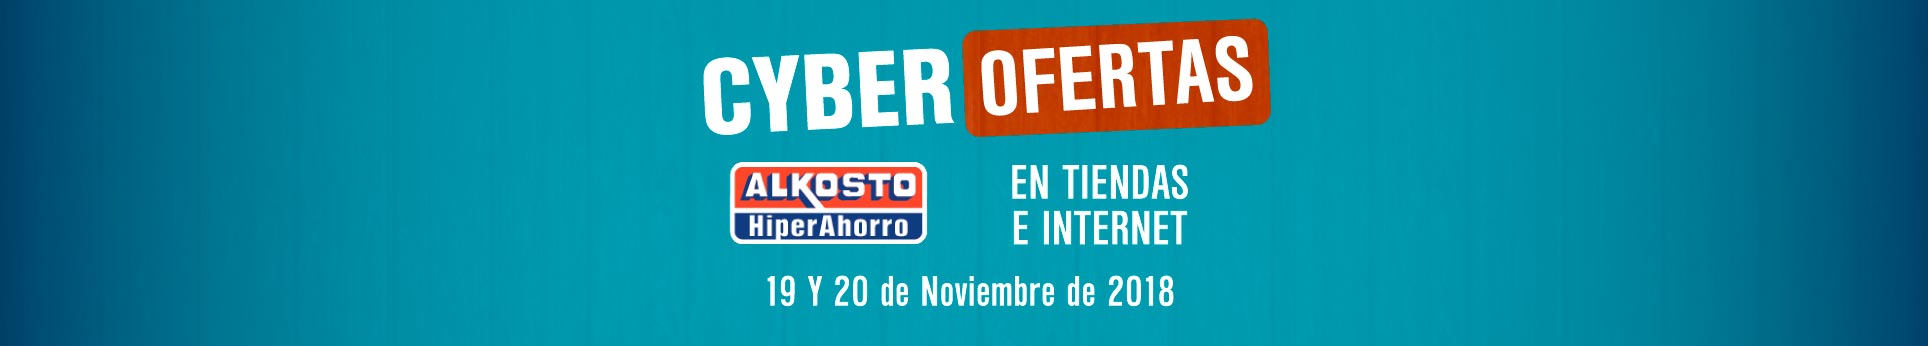 Cyber Lunes colombia 2018 Alkosto